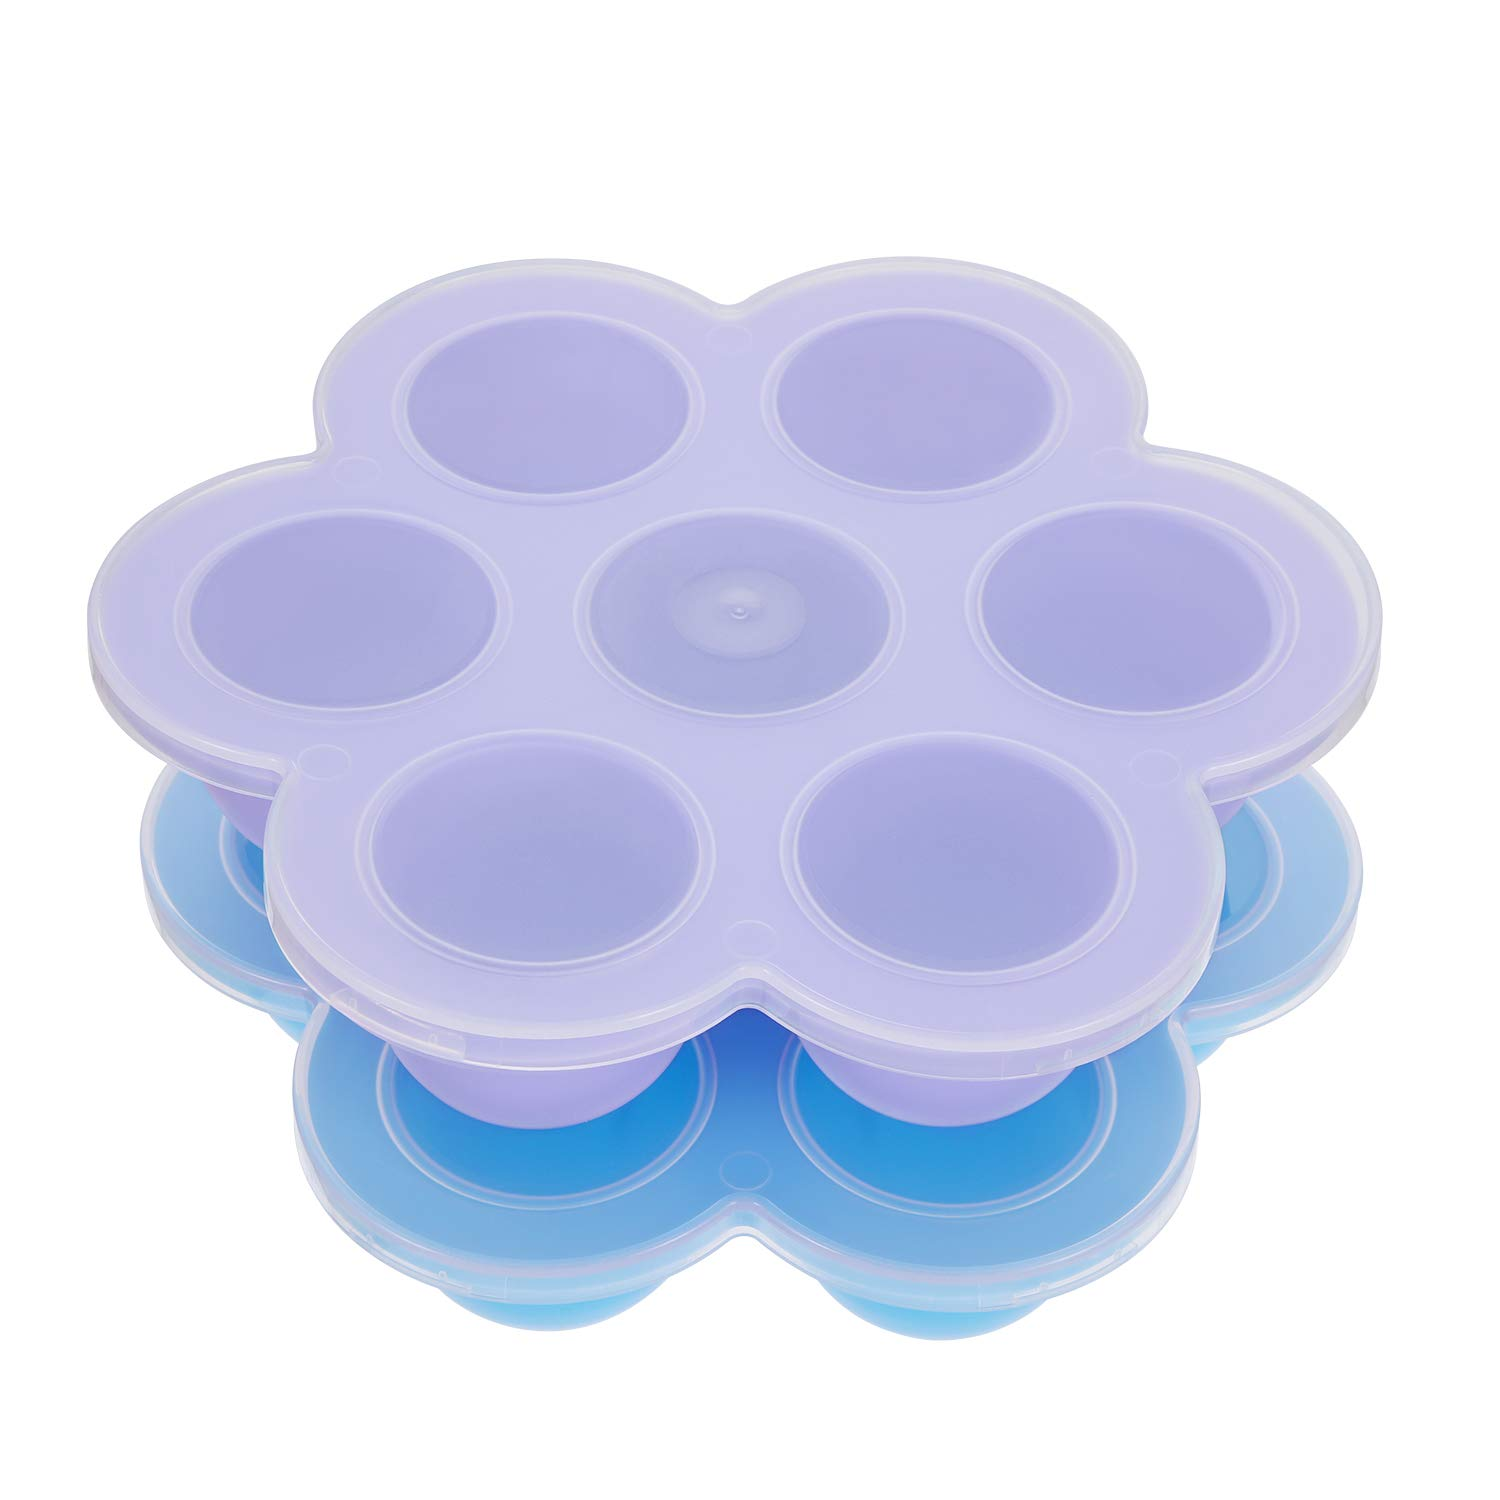 Aozita Silicone Egg Bites Molds for Instant Pot Accessories - Fits Instant Pot 5,6,8 qt Pressure Cooker, Reusable Baby Food Storage Container and Freezer Tray with Lid, Sous Vide Egg Poacher